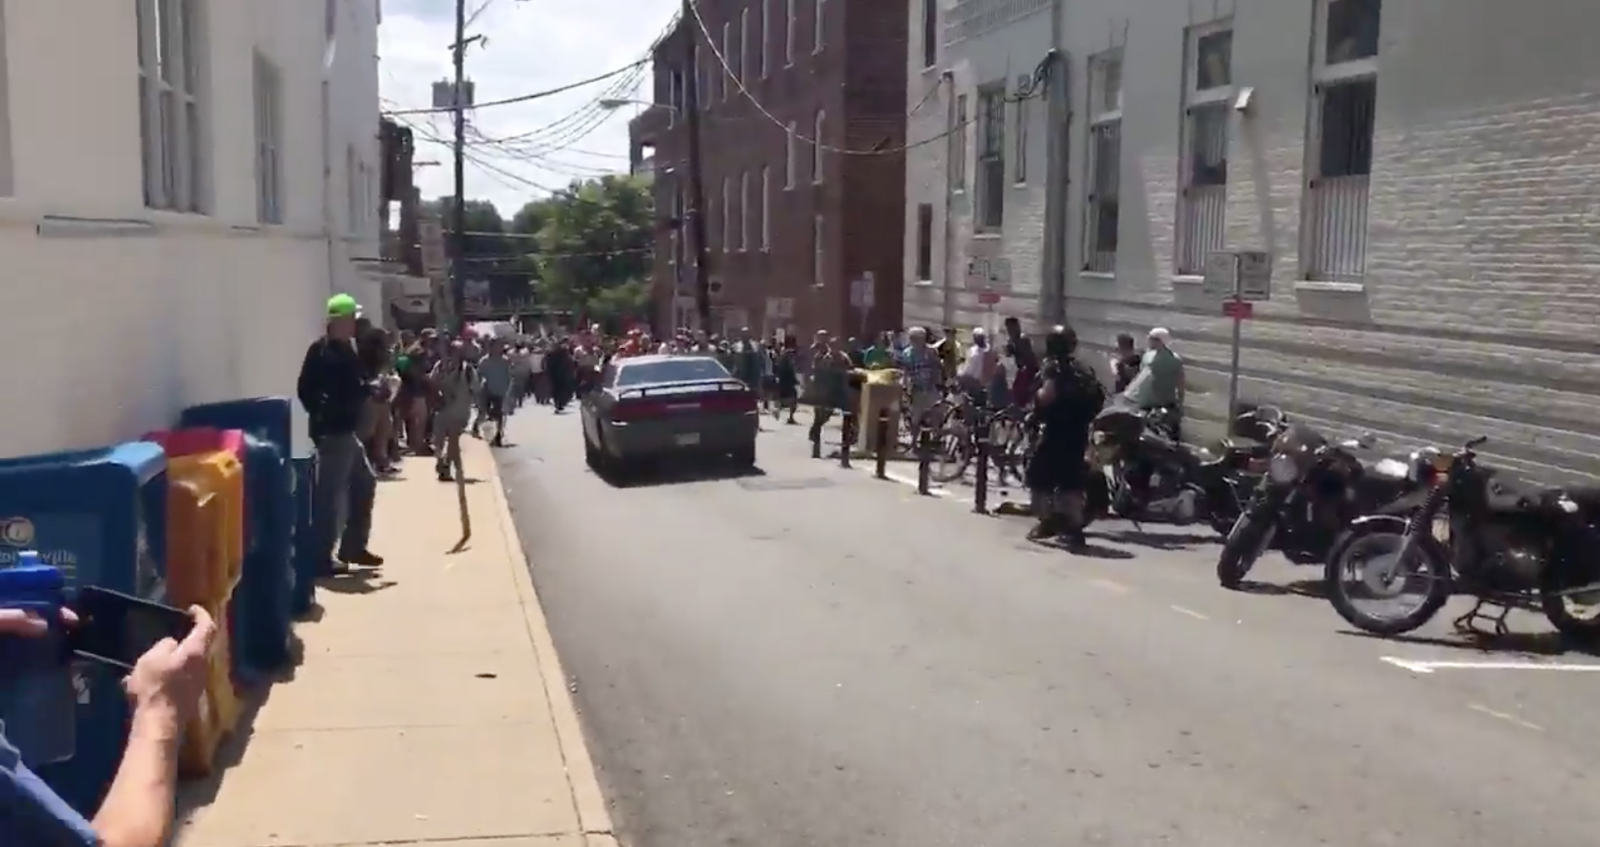 Charlottesville rally: 1 person confirmed dead as car driven by white supremacist ploughs into crowd